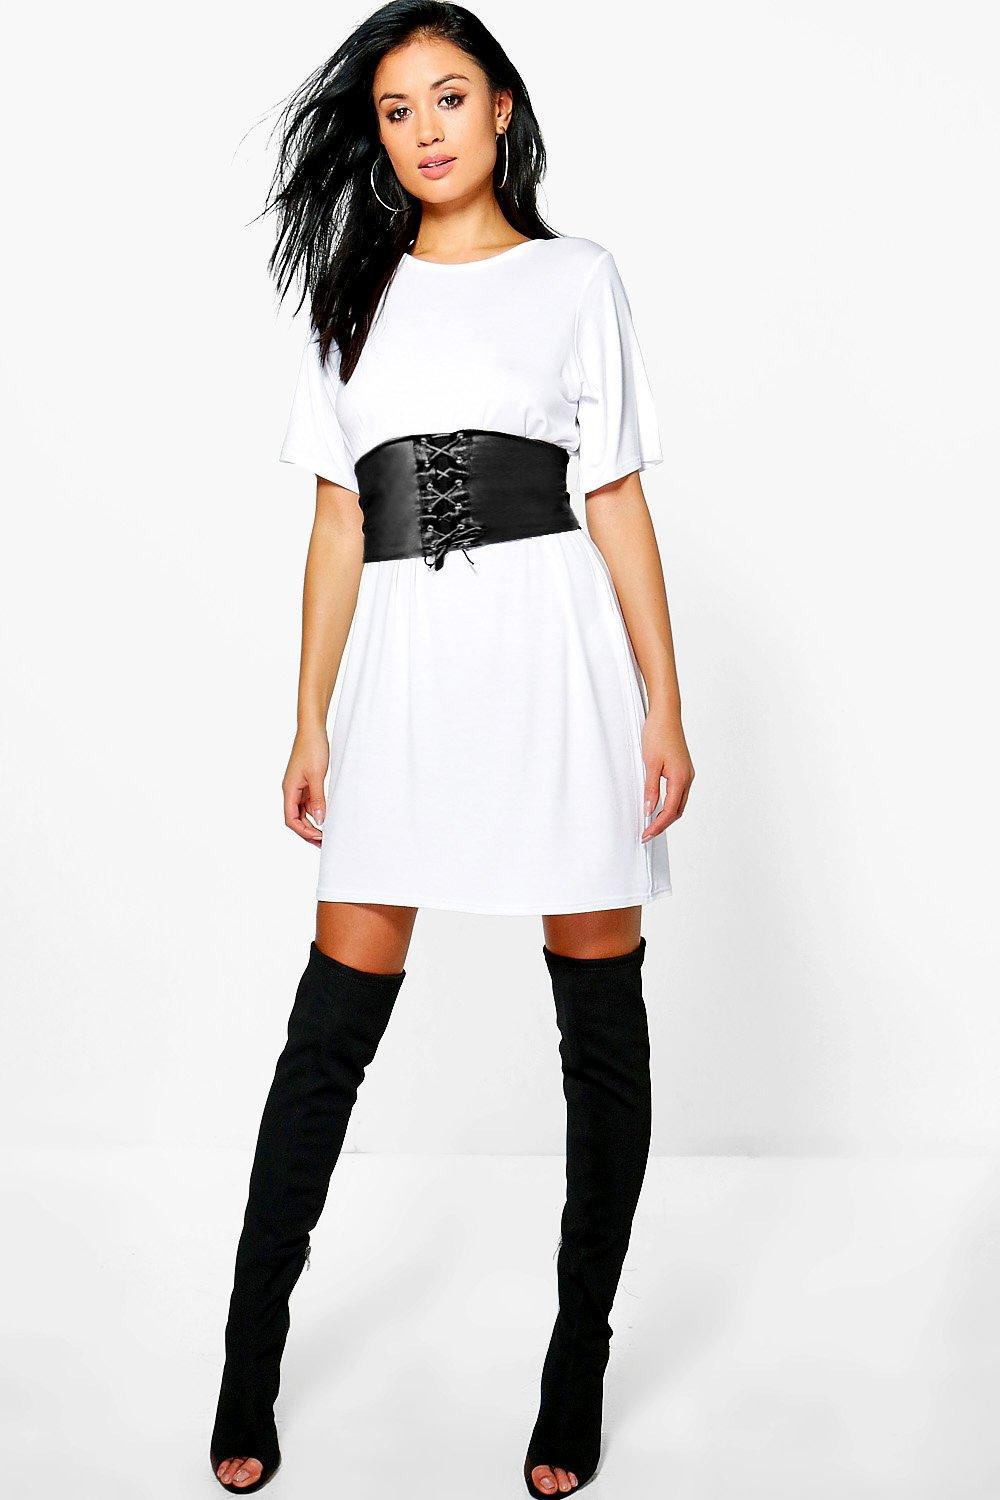 3db93cad20 Lyst - Boohoo 2 In 1 Corset Belt T-shirt Dress in White